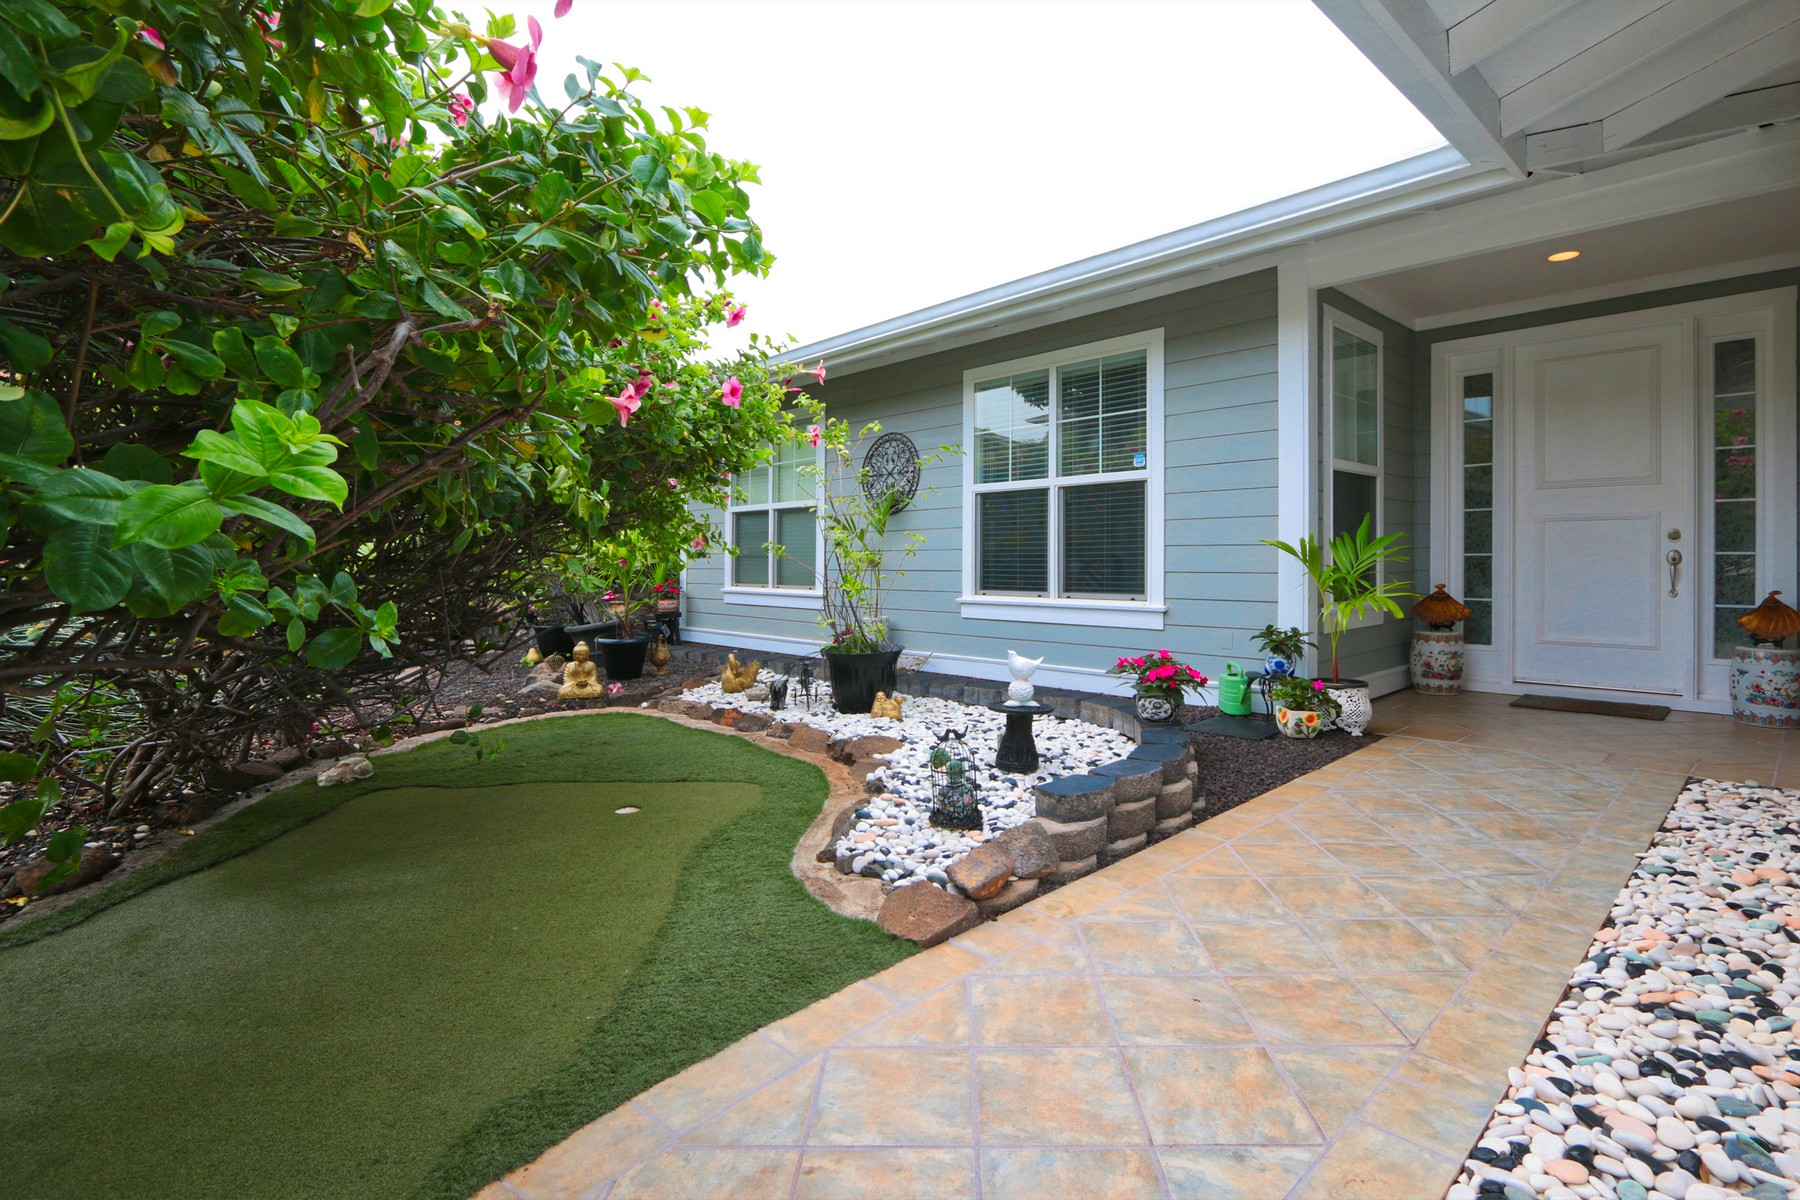 Casa Unifamiliar por un Venta en Friendly Neighborhood Great Location 111 Kulipuu Street Kihei, Hawaii 96753 Estados Unidos